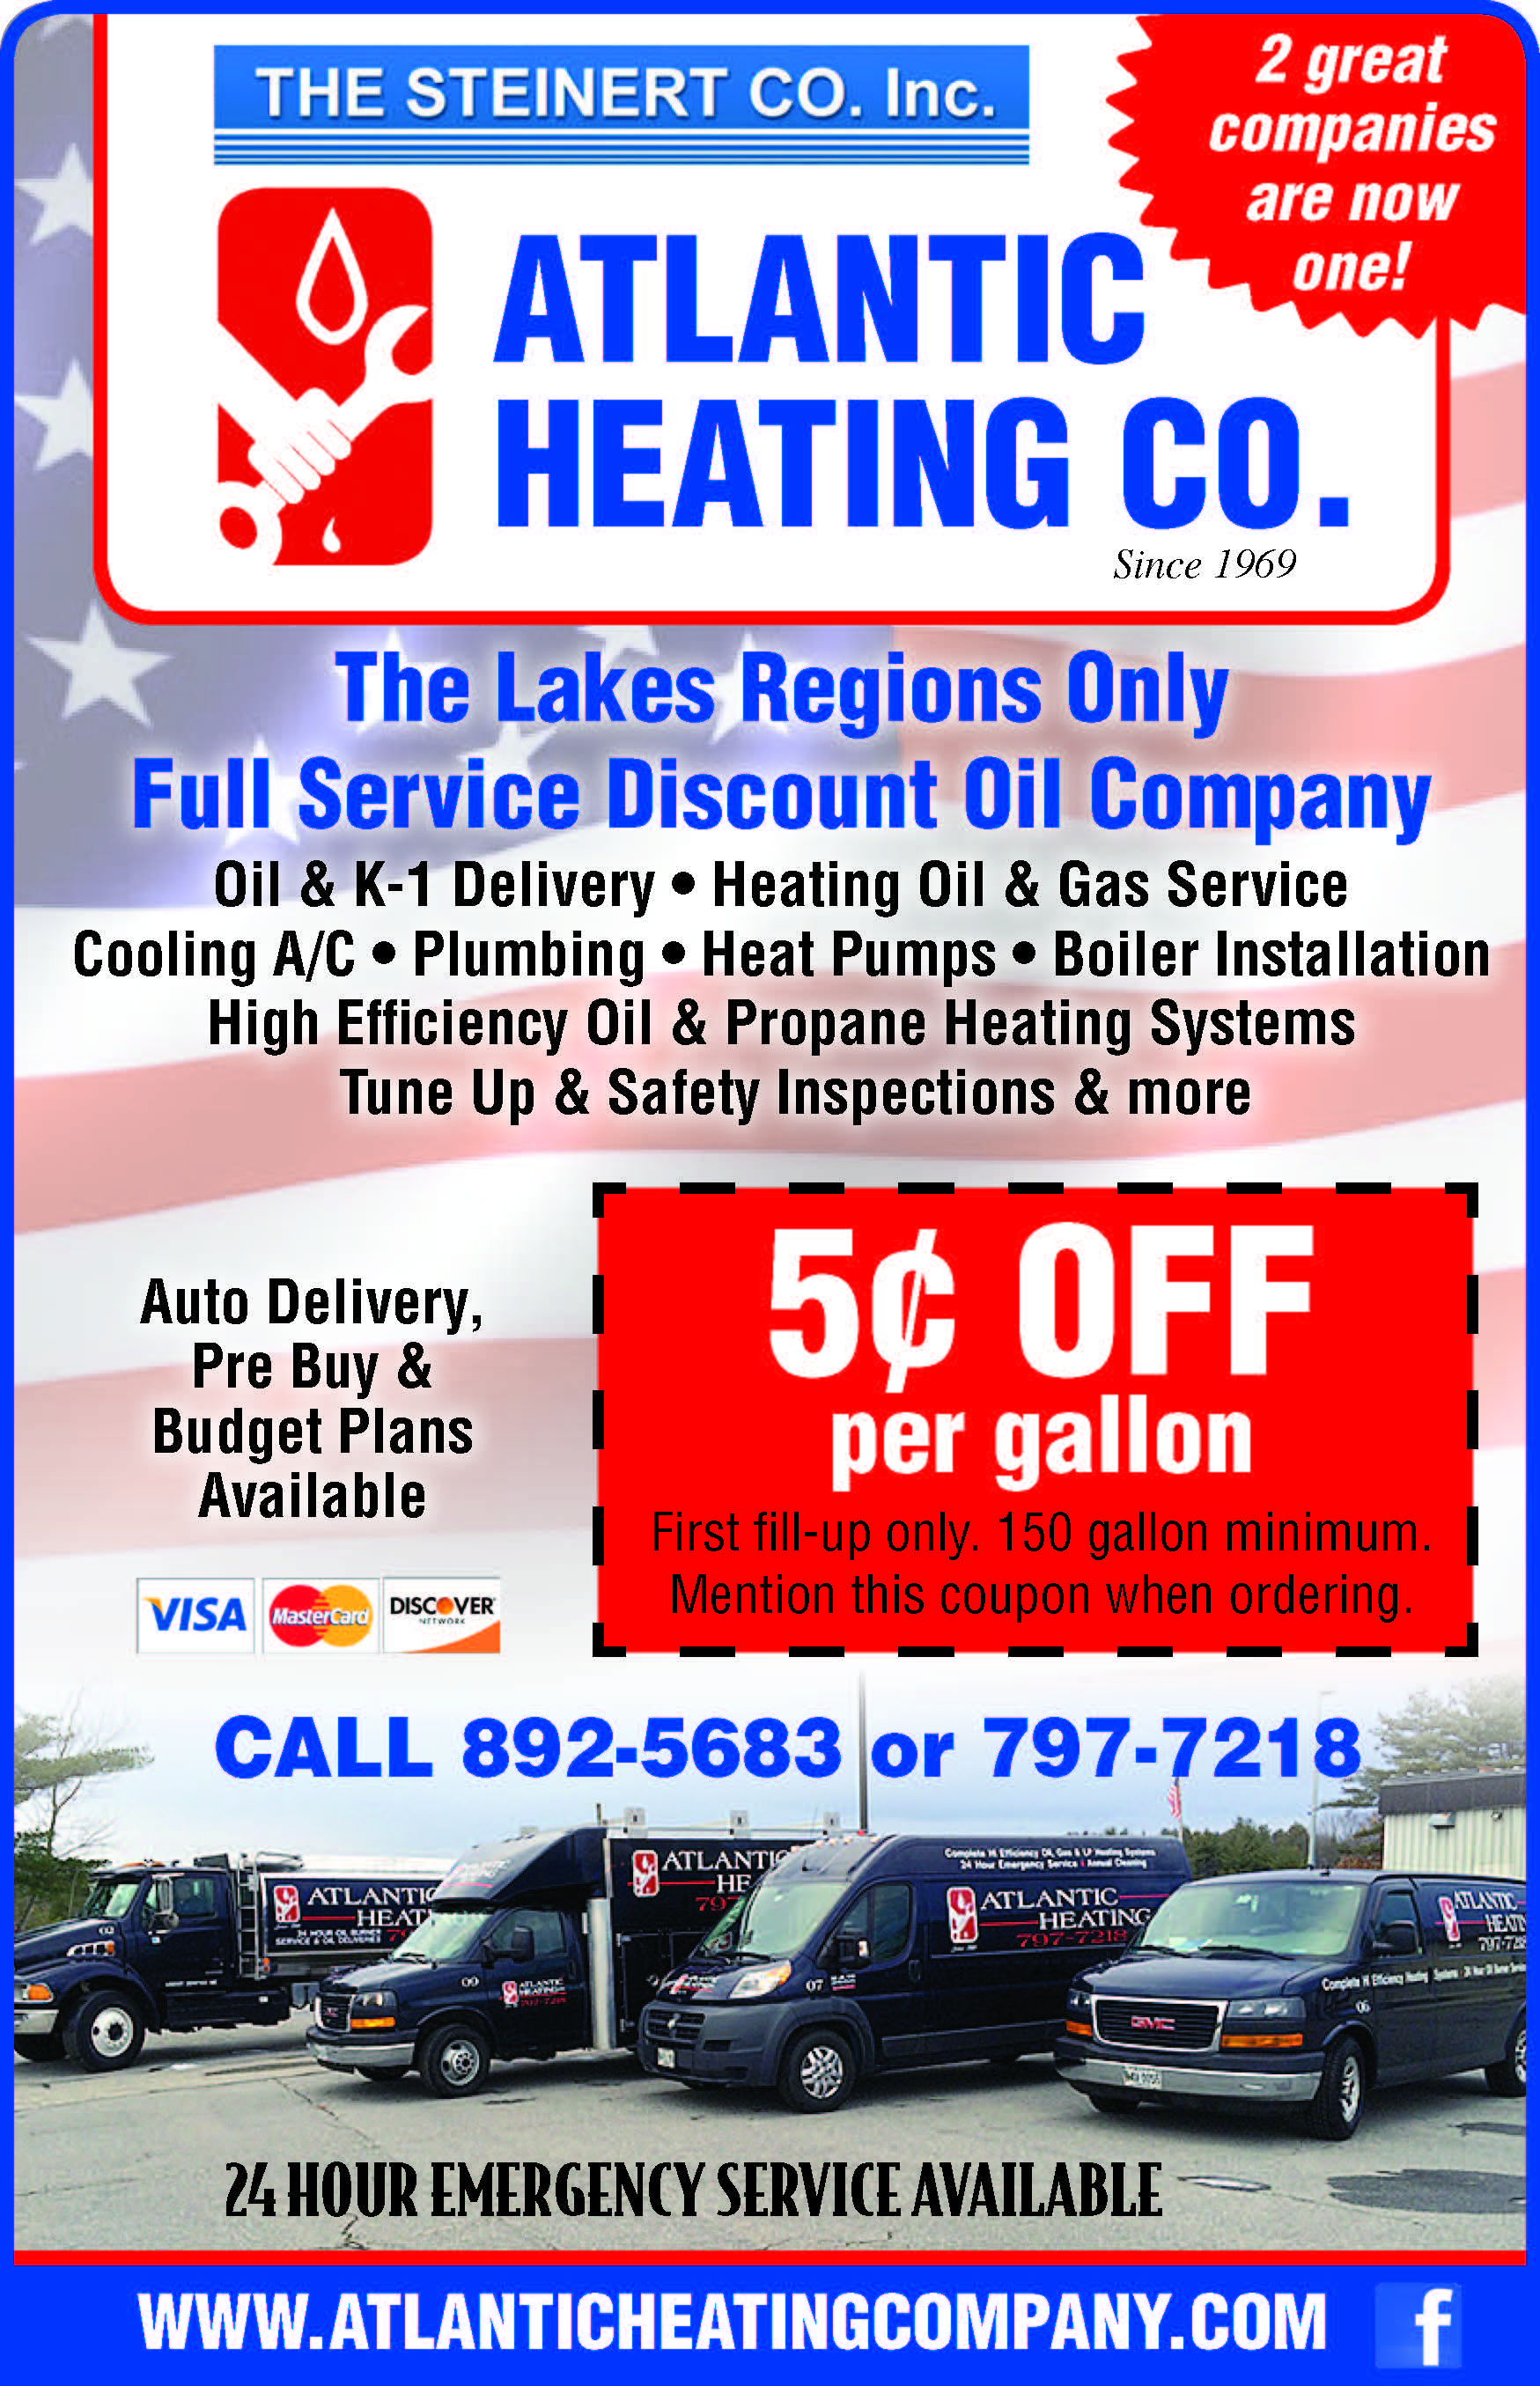 http://atlanticheatingcompany.com/